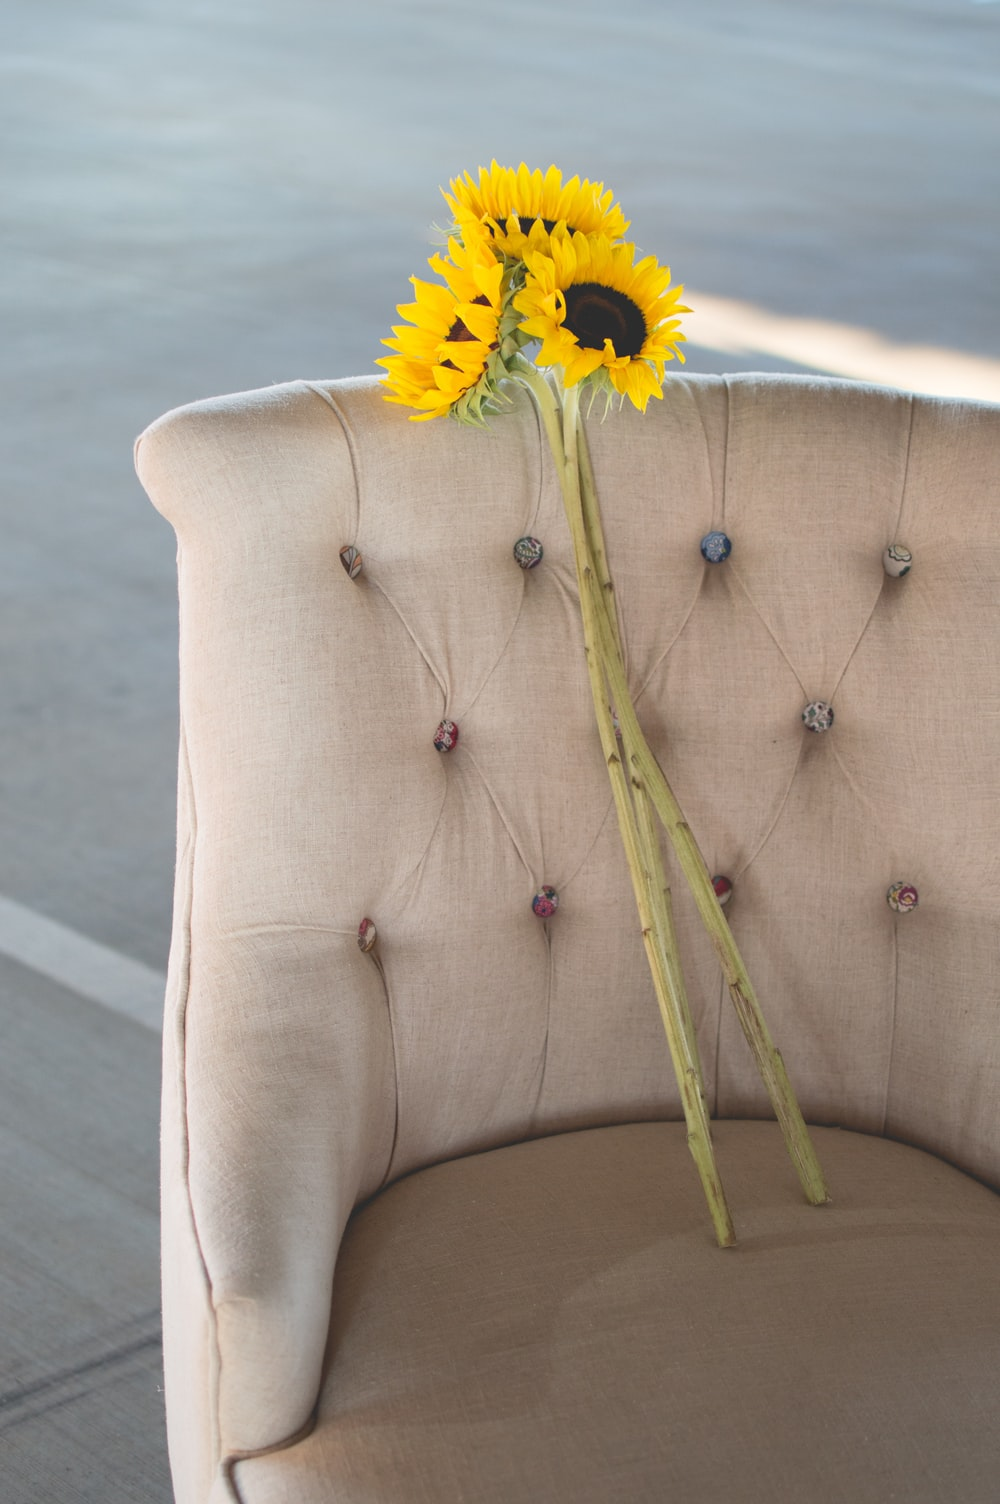 three yellow sunlowers on beige fabric chair